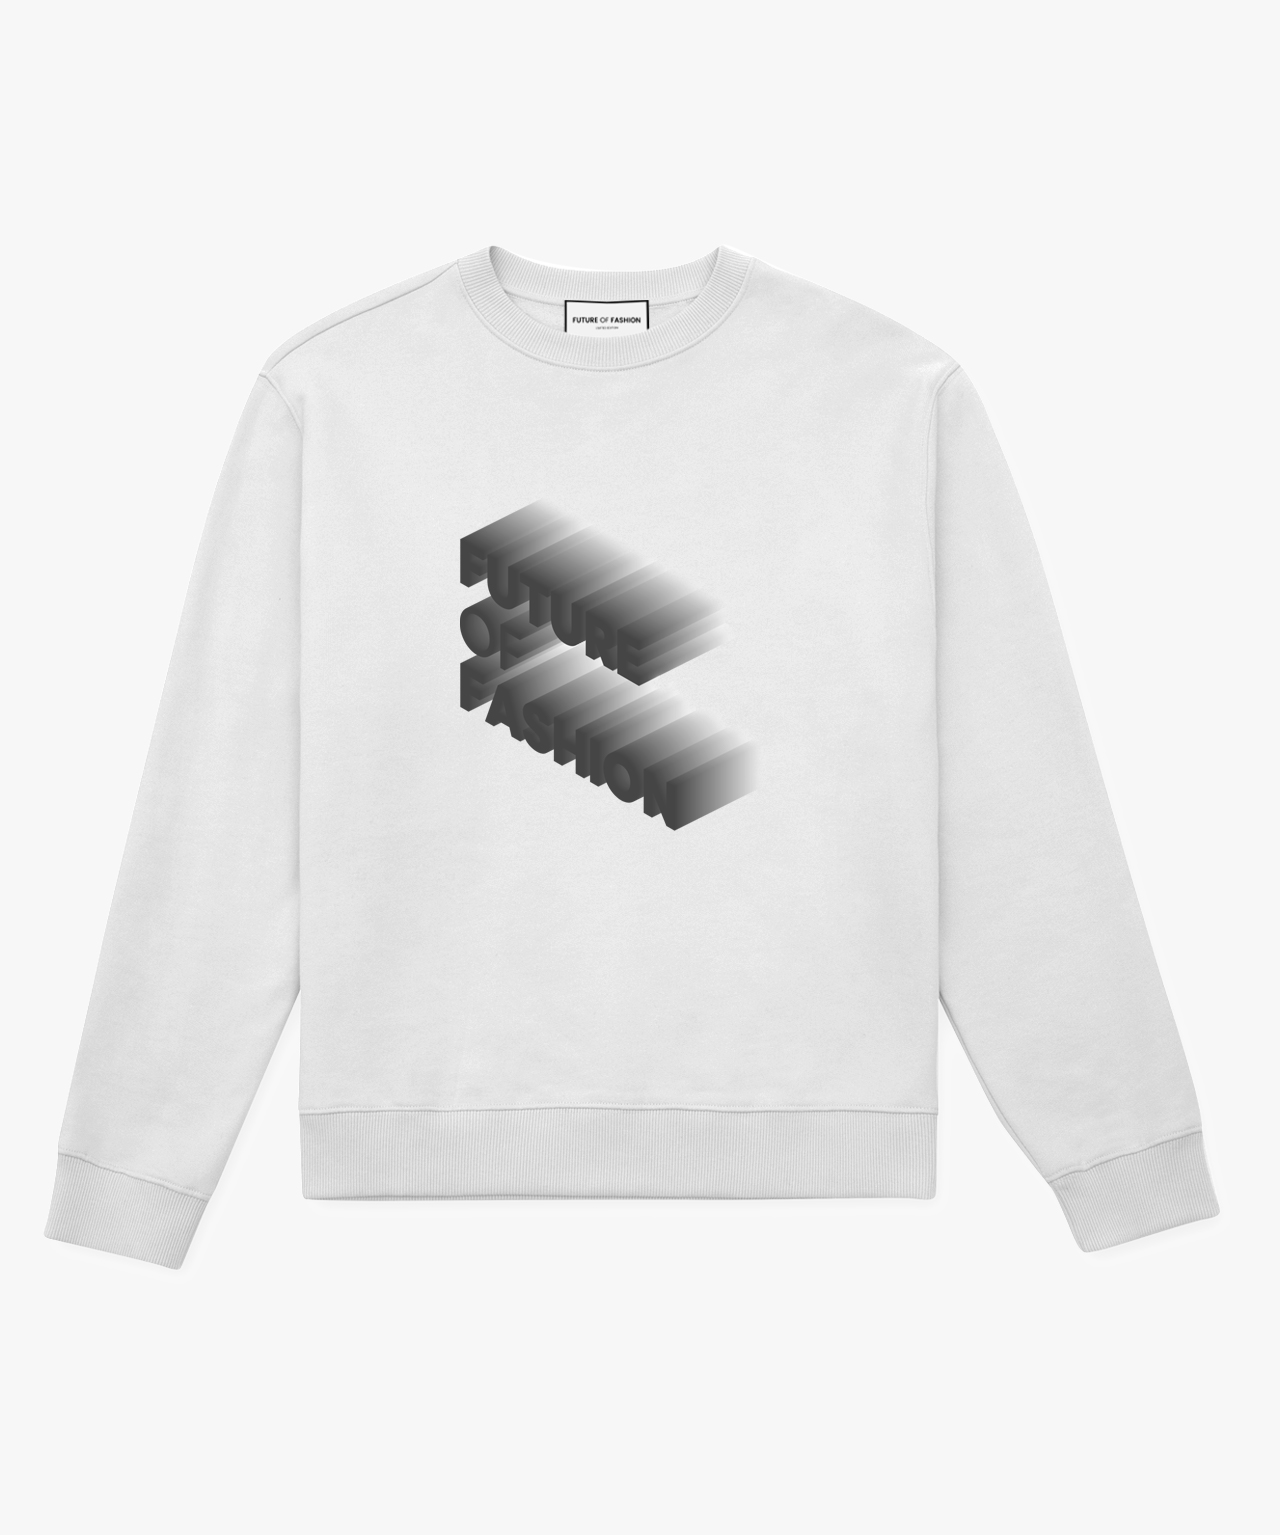 Fade Out Sweatshirt 14